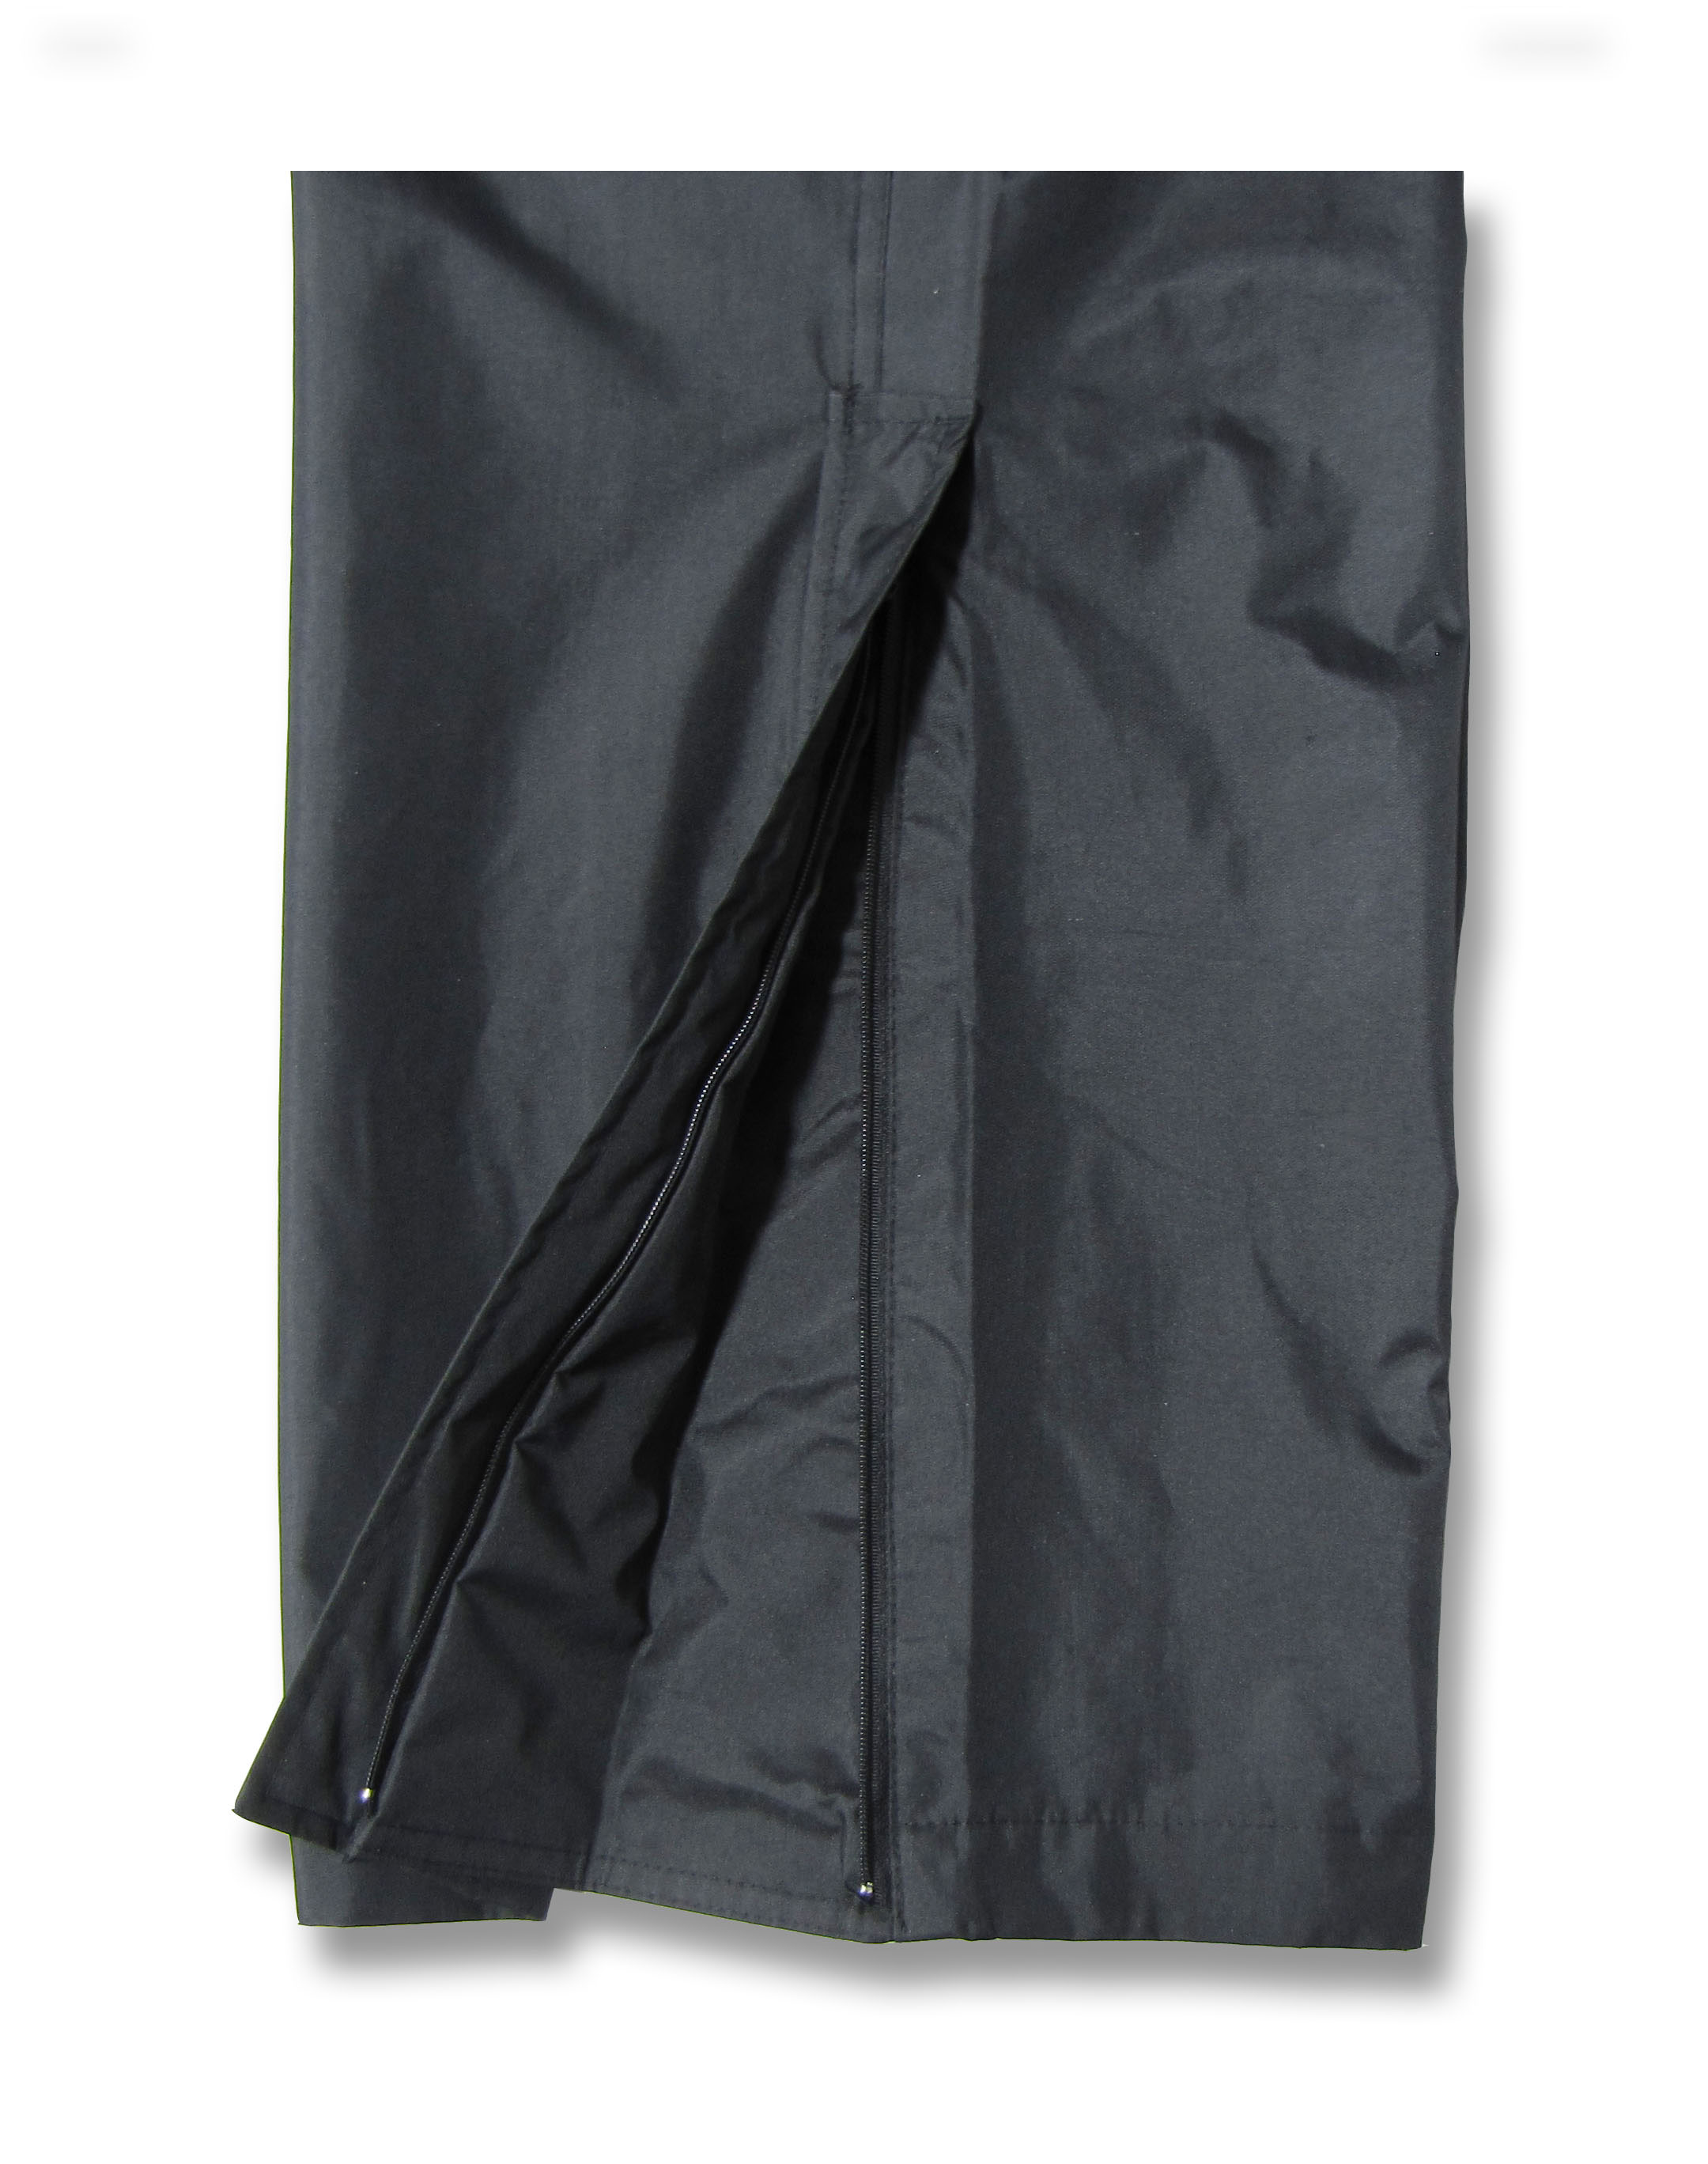 paca pant storm flap by Code Four Athletics